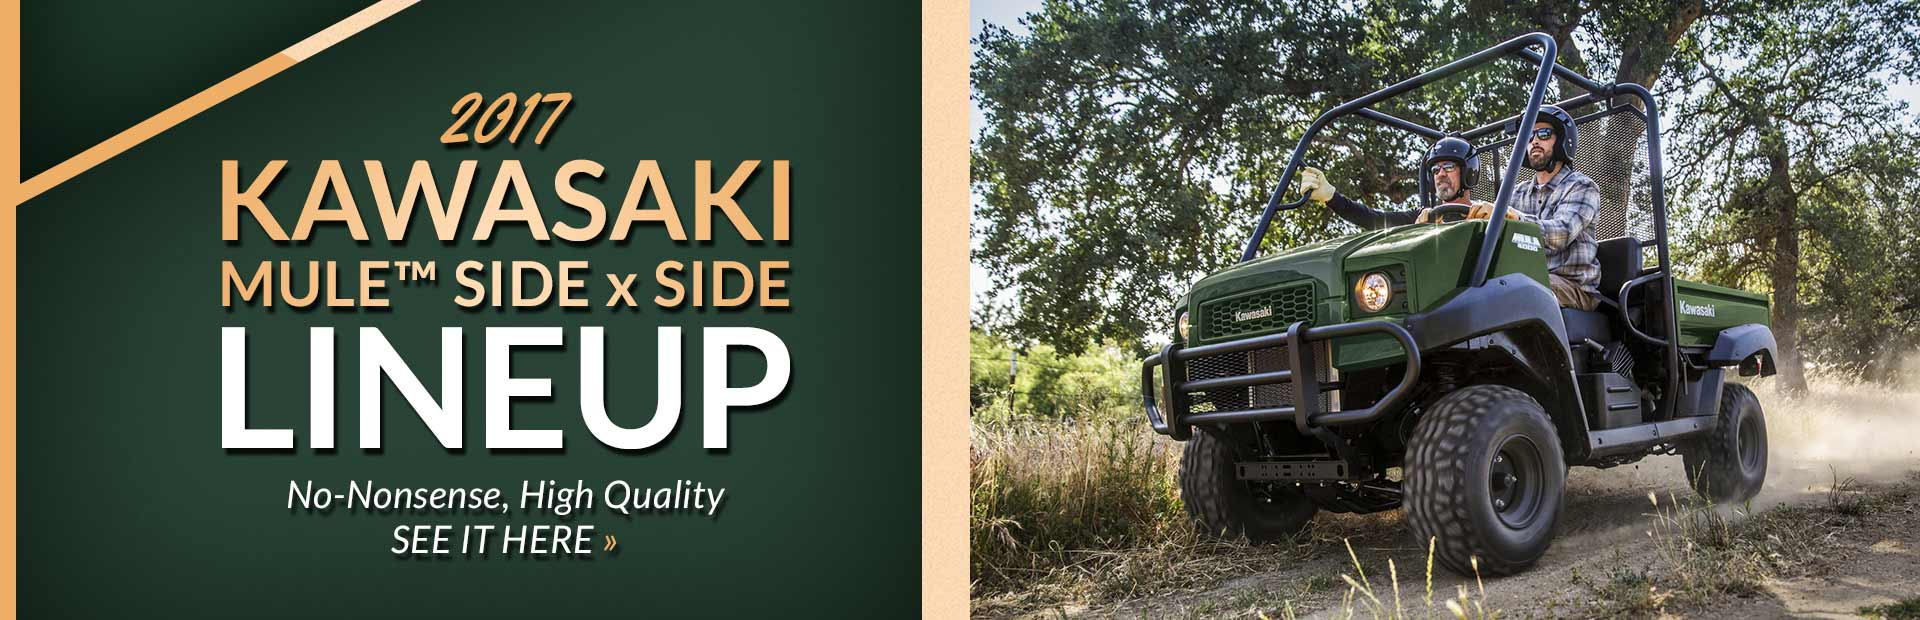 Click here to view the 2017 Kawasaki MULE™ side x side lineup.